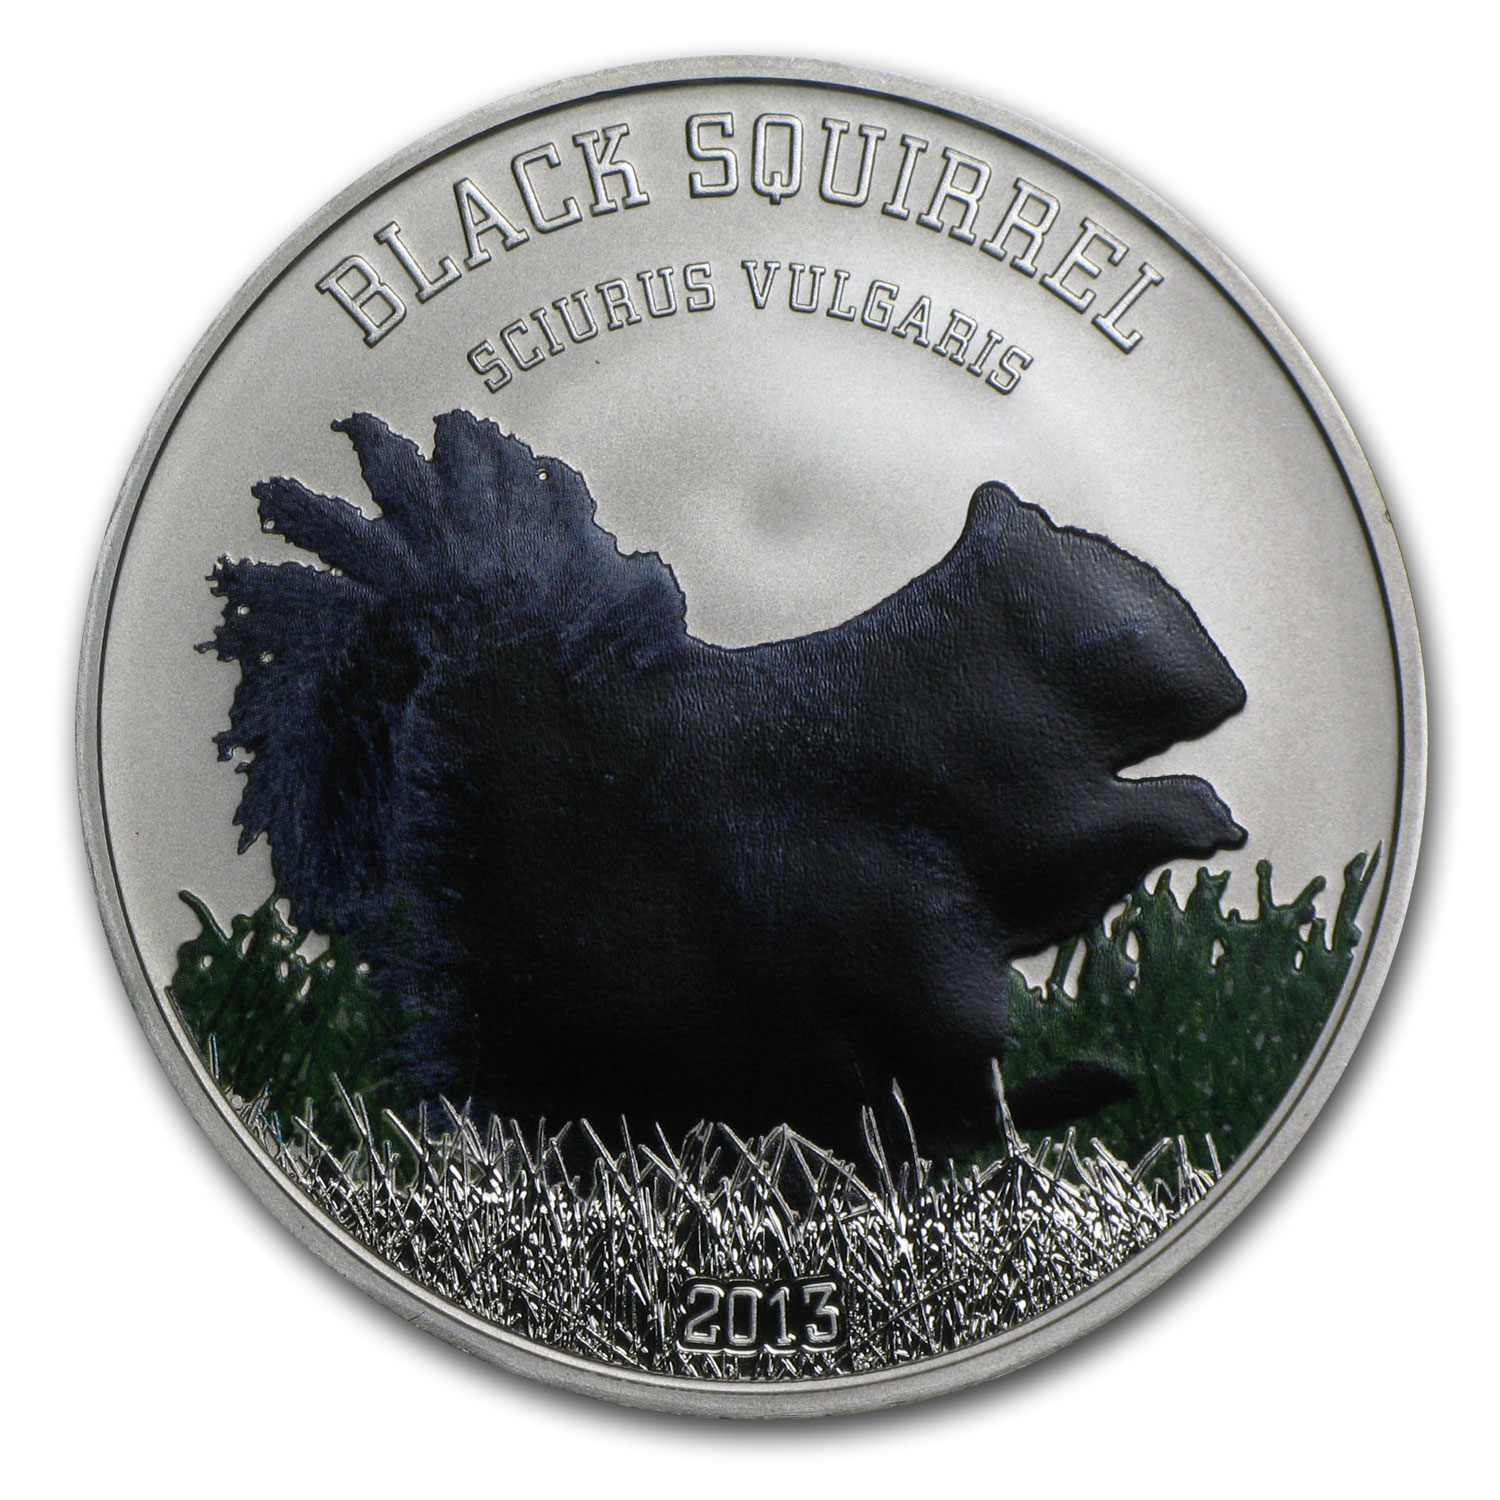 2013 Cook Islands Silver Black Beauties Proof (Black Squirrel)